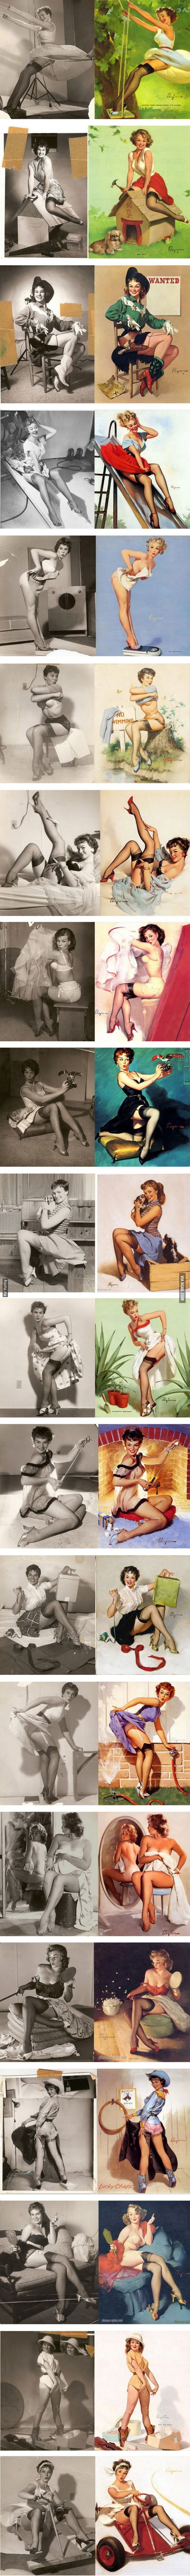 Before Photoshop, there was pinup art. - 9GAG